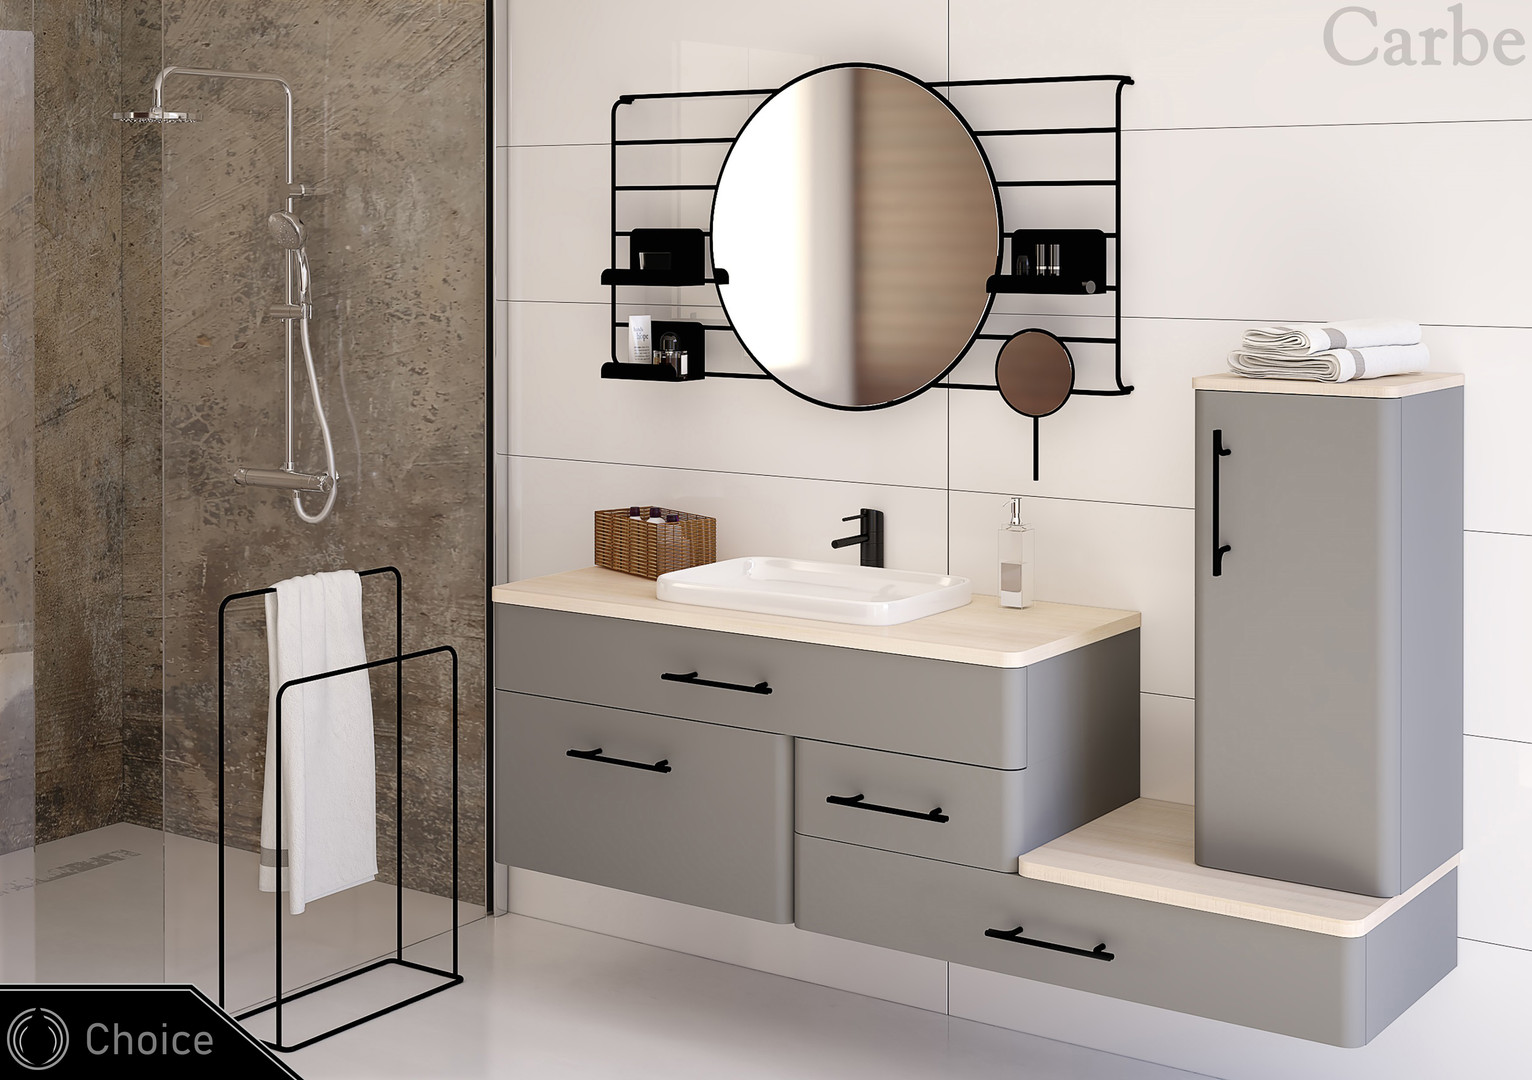 Choice - Gray Suedette Matt, Natural Ash Wood, Dolmite Washbasin, Soft Closing